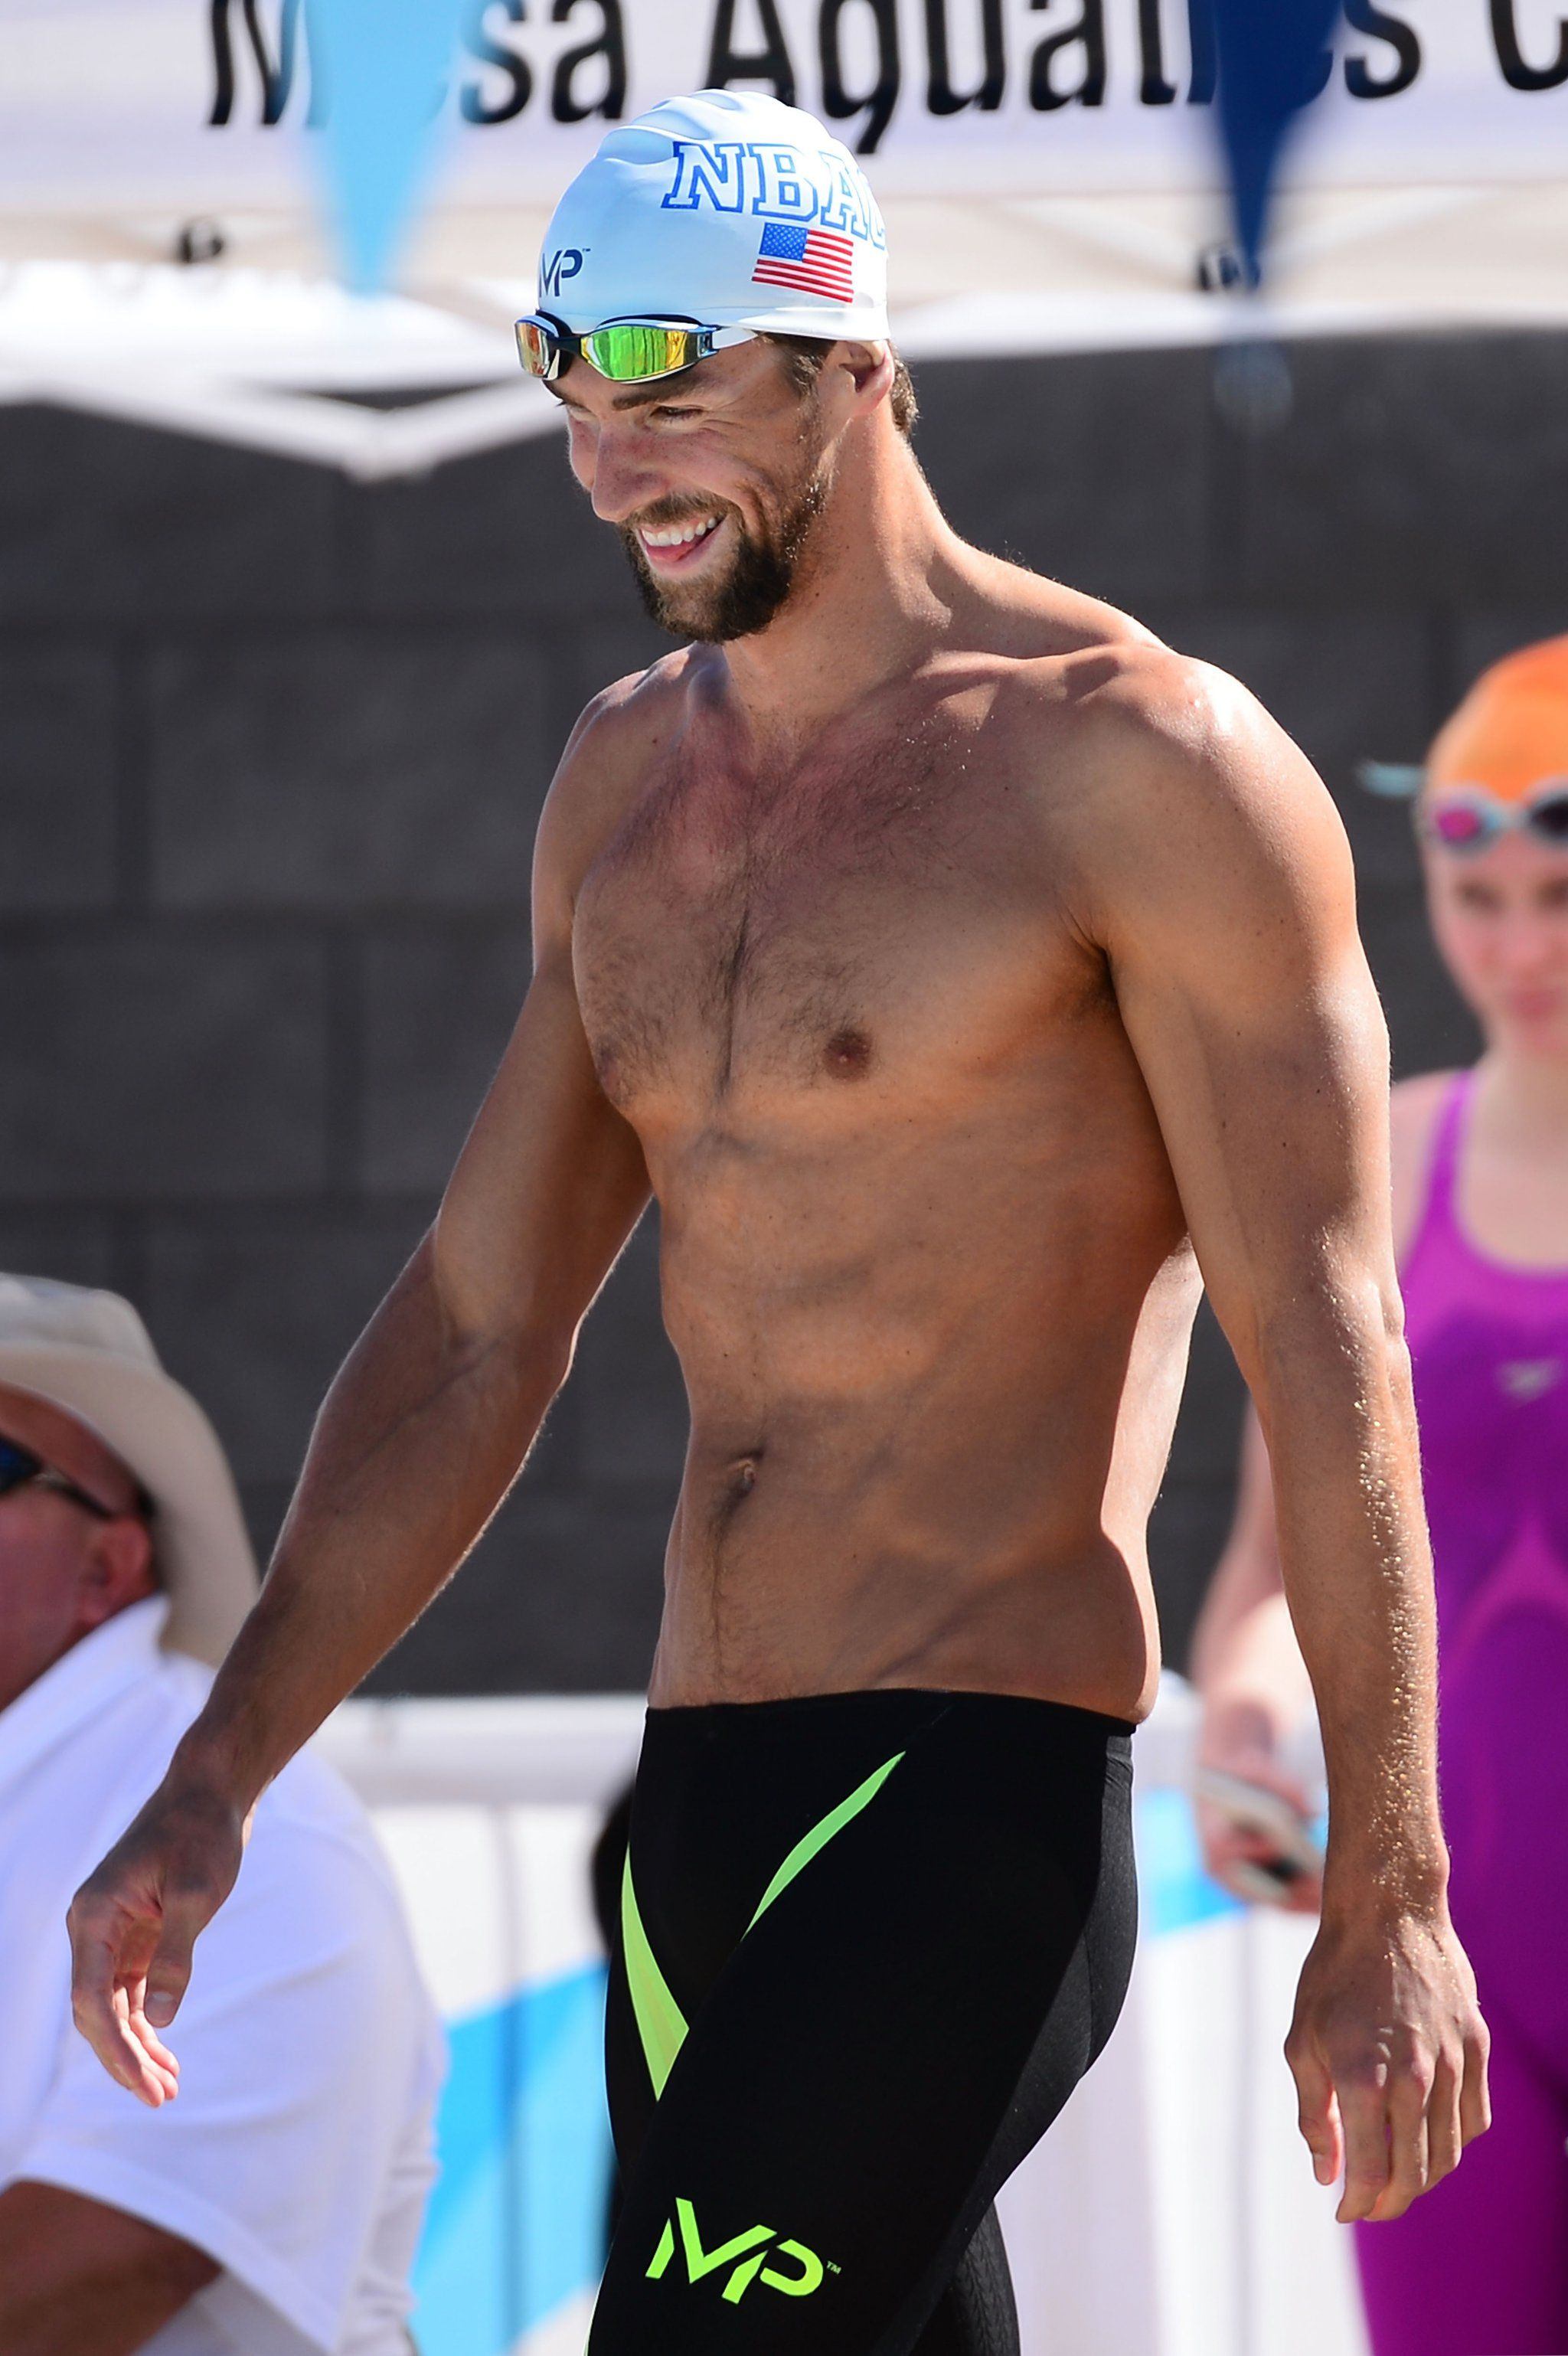 Superstar Naked Photos Of Michael Phelps Pic